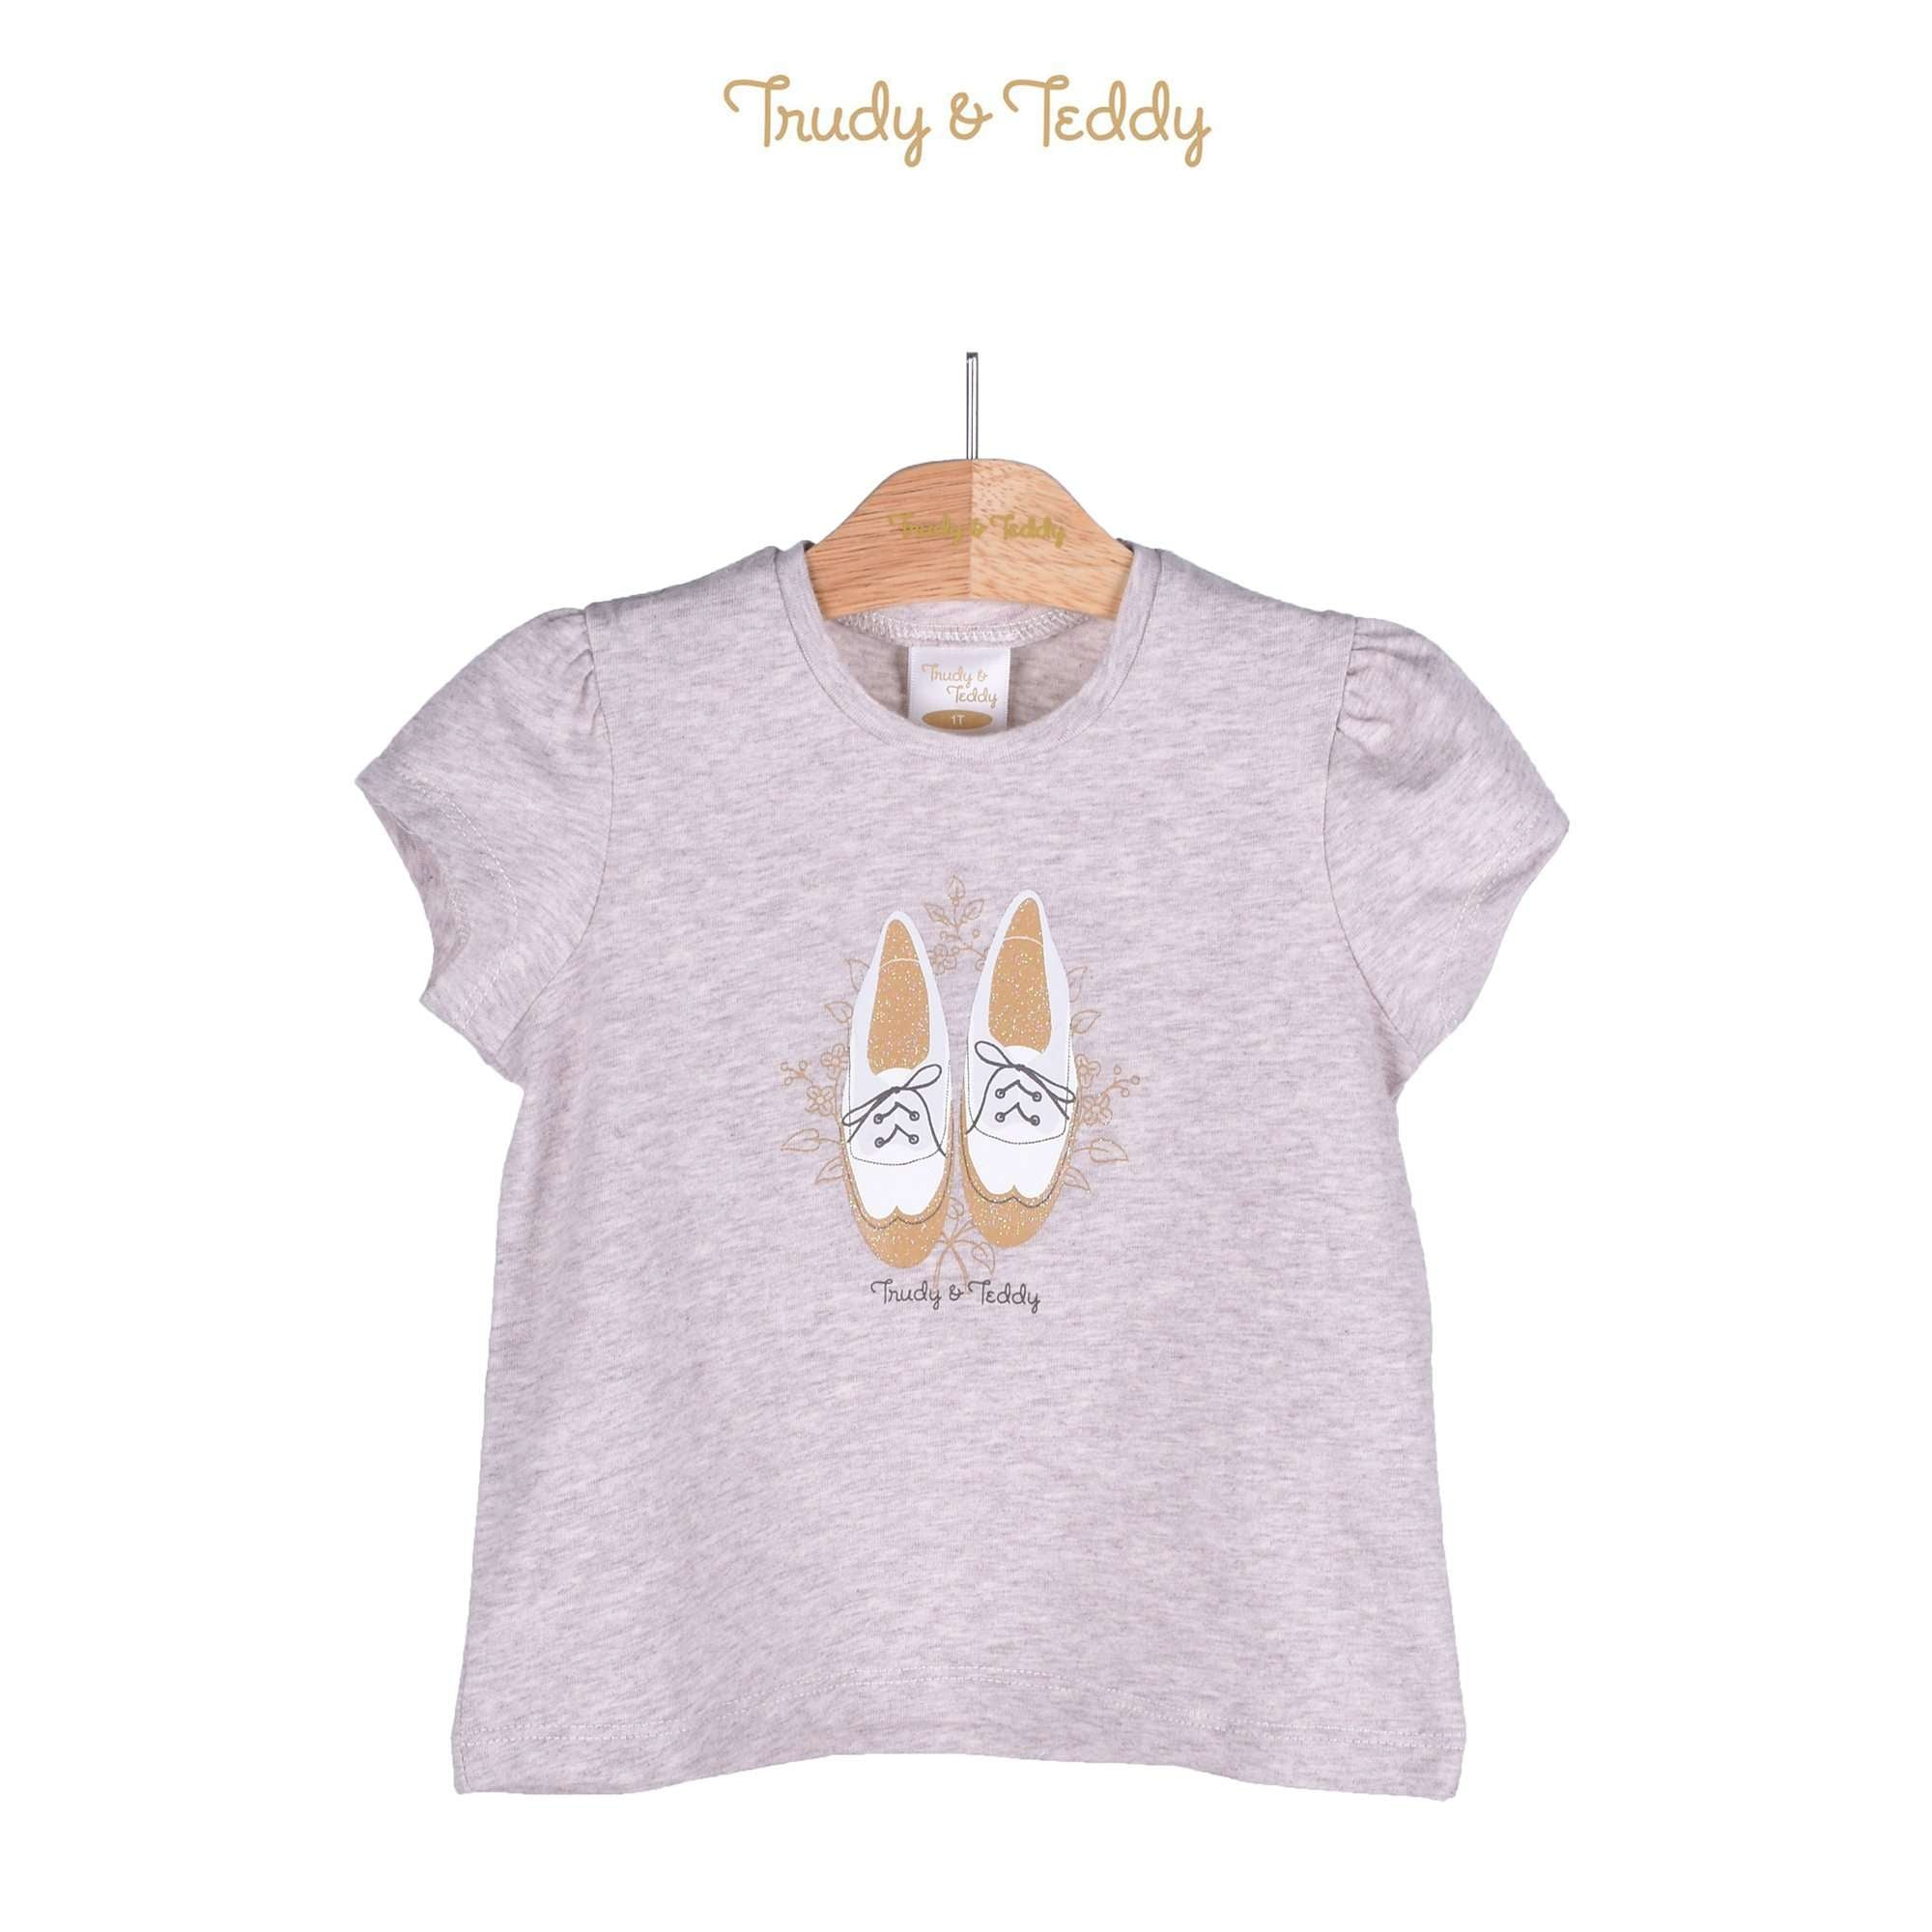 Trudy & Teddy Toddler Girl Short Sleeve Tee 825045-111 : Buy Trudy & Teddy online at CMG.MY